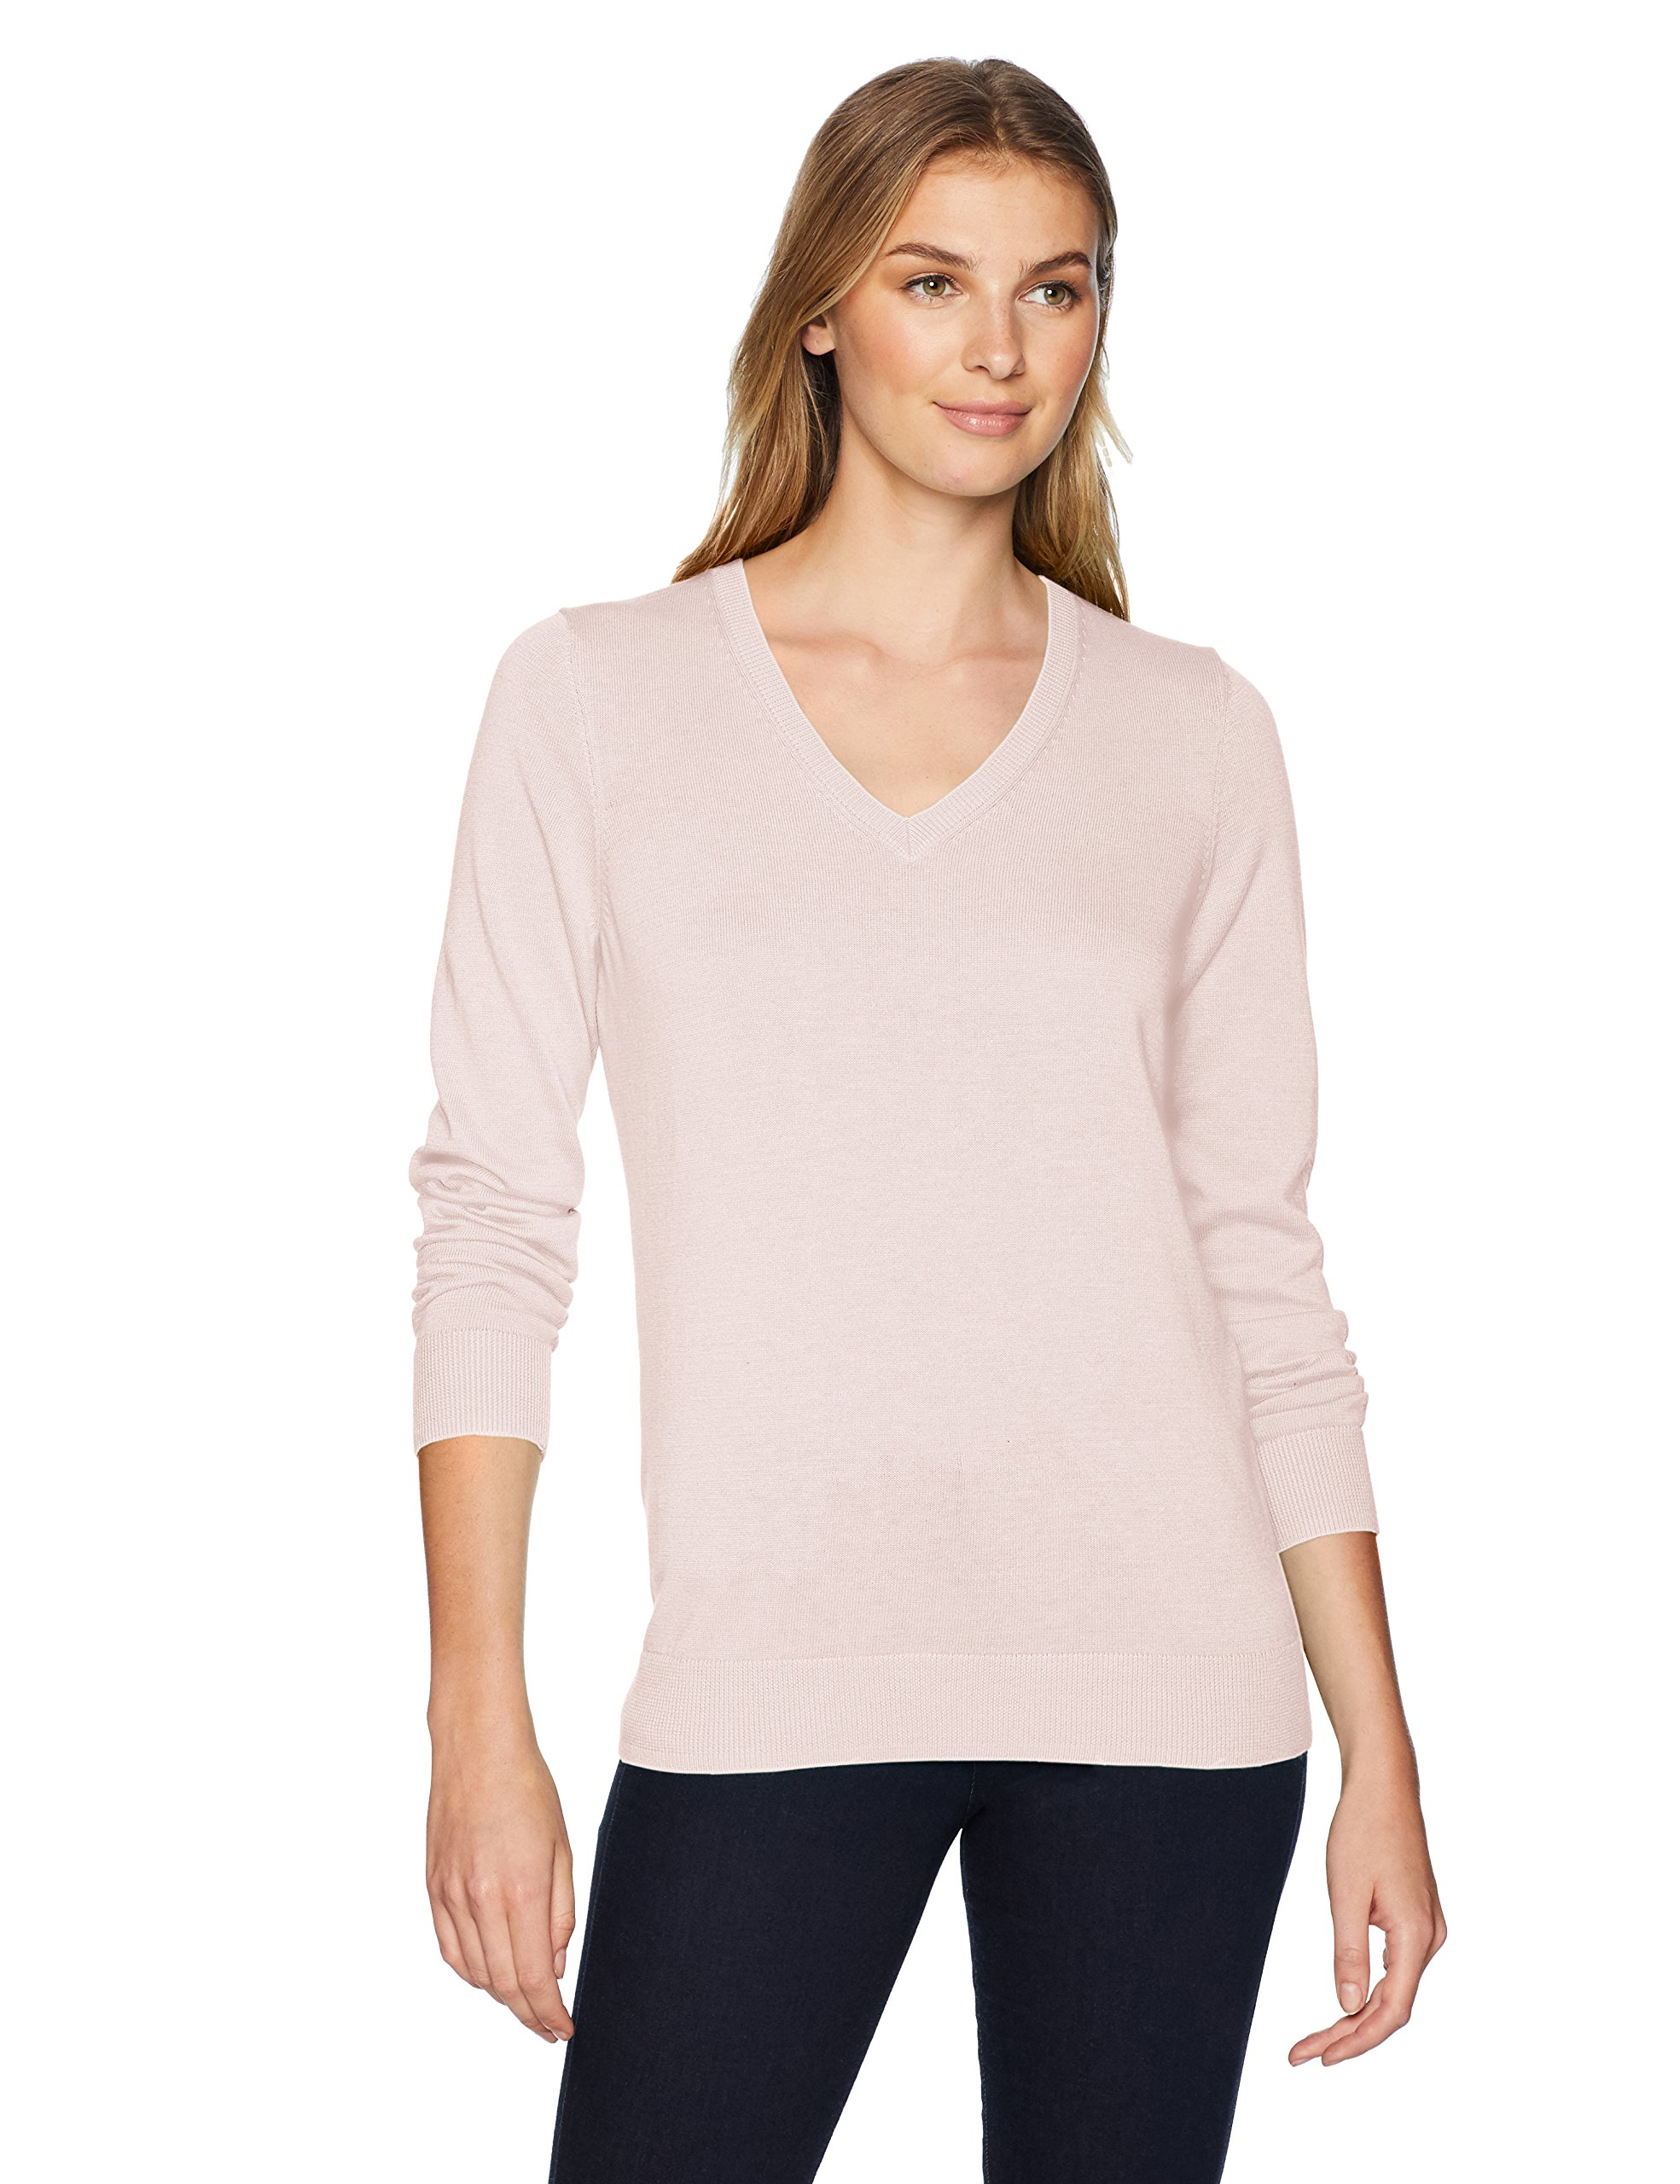 Amazon Essentials Women's Standard V-Neck Sweater, Light Pink, Small